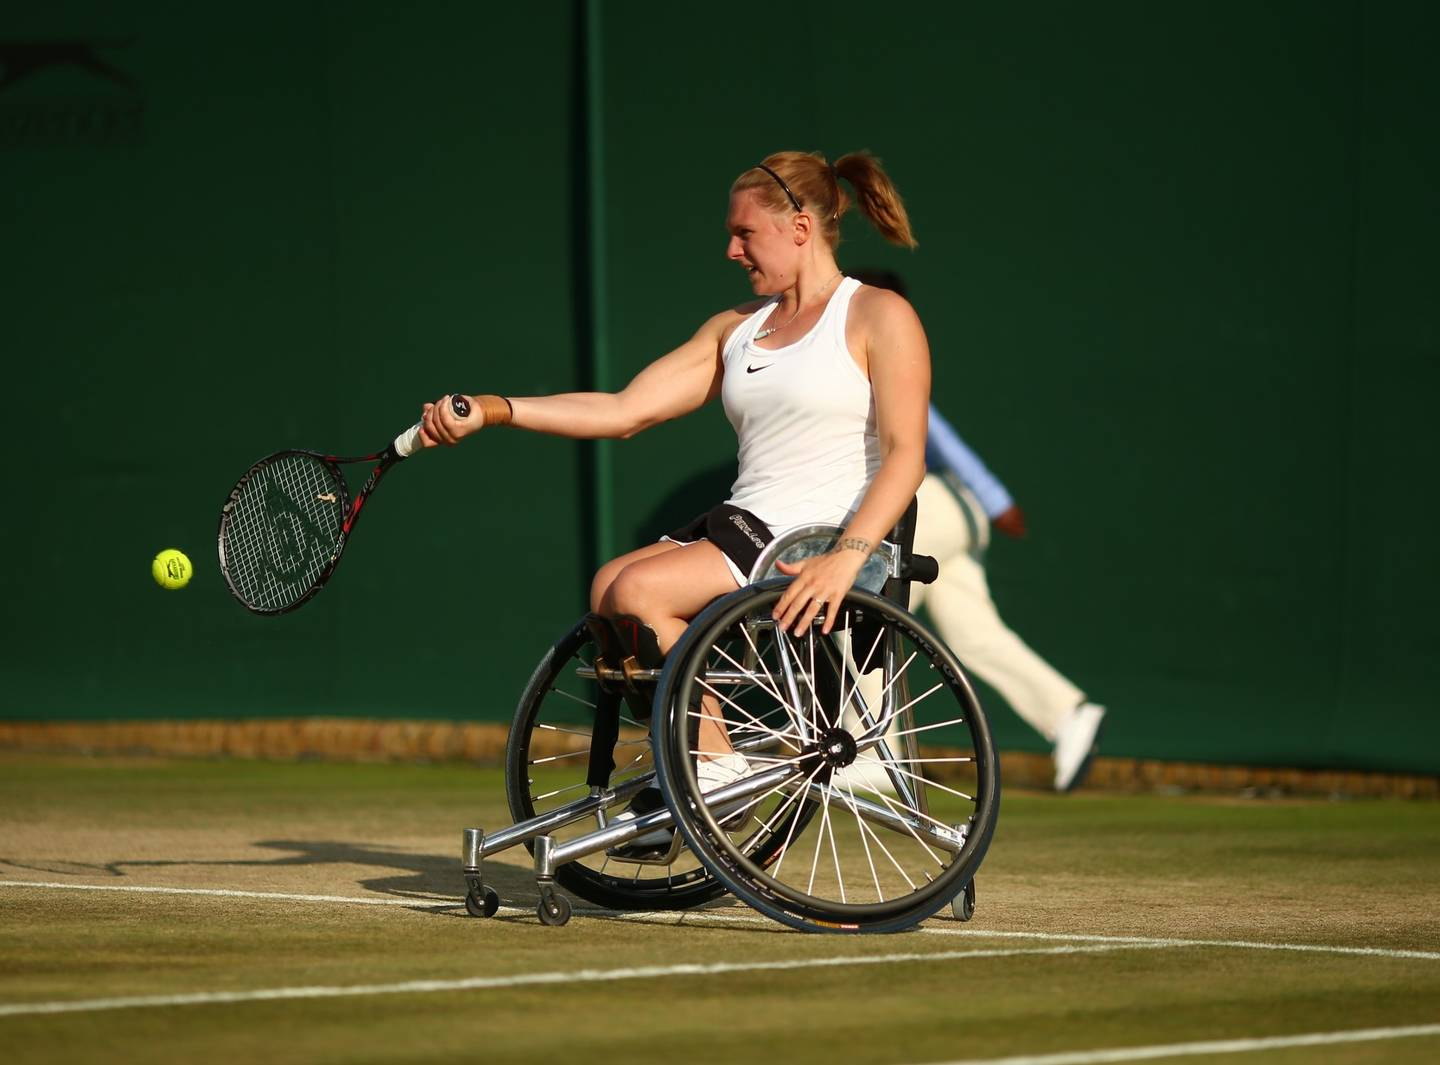 Jordanne Whiley, wheelchair tennis player hitting forehand on grass court